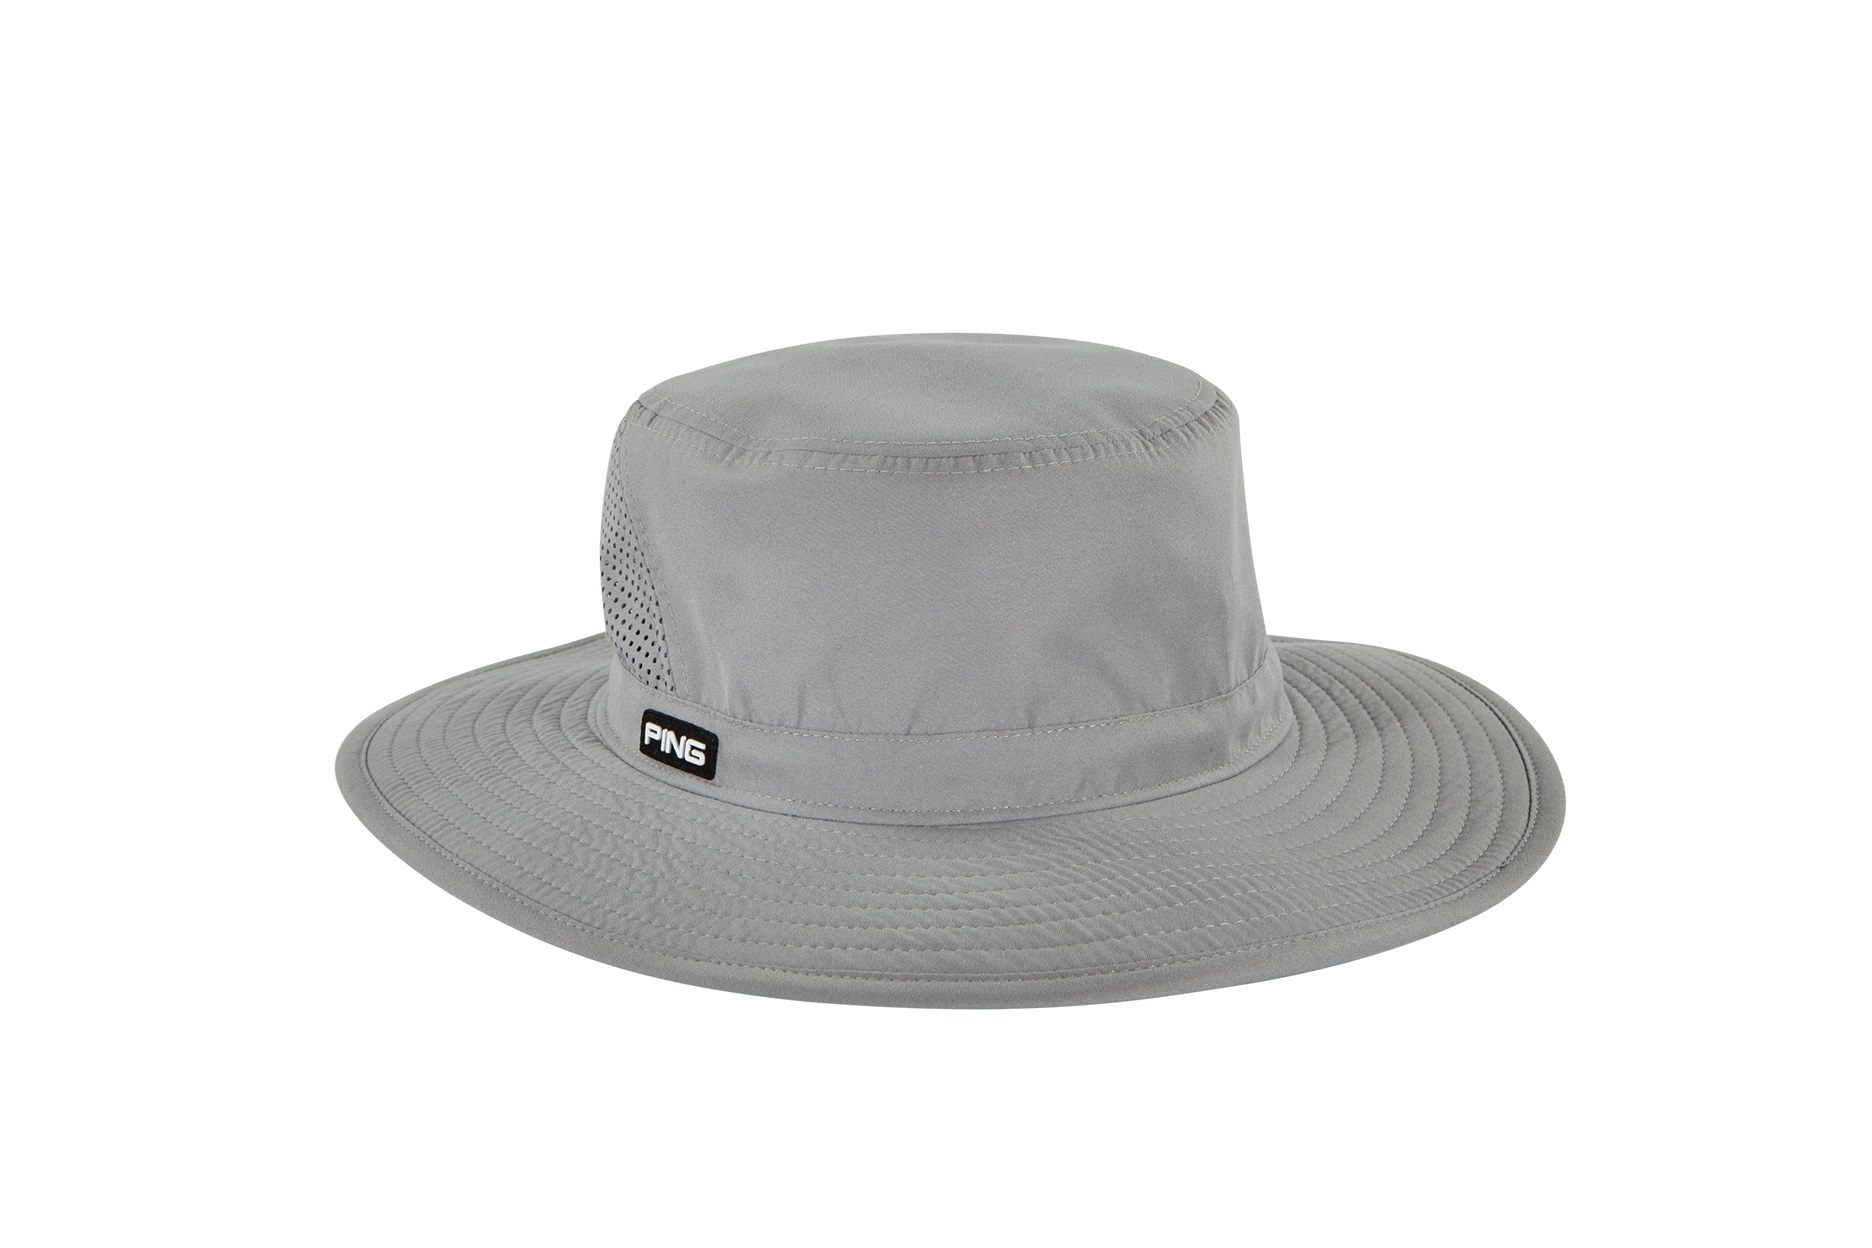 PING BOONIE HAT MENS GOLF BUCKET CAP- NEW 2018 - PICK COLOR  a7b0258352f